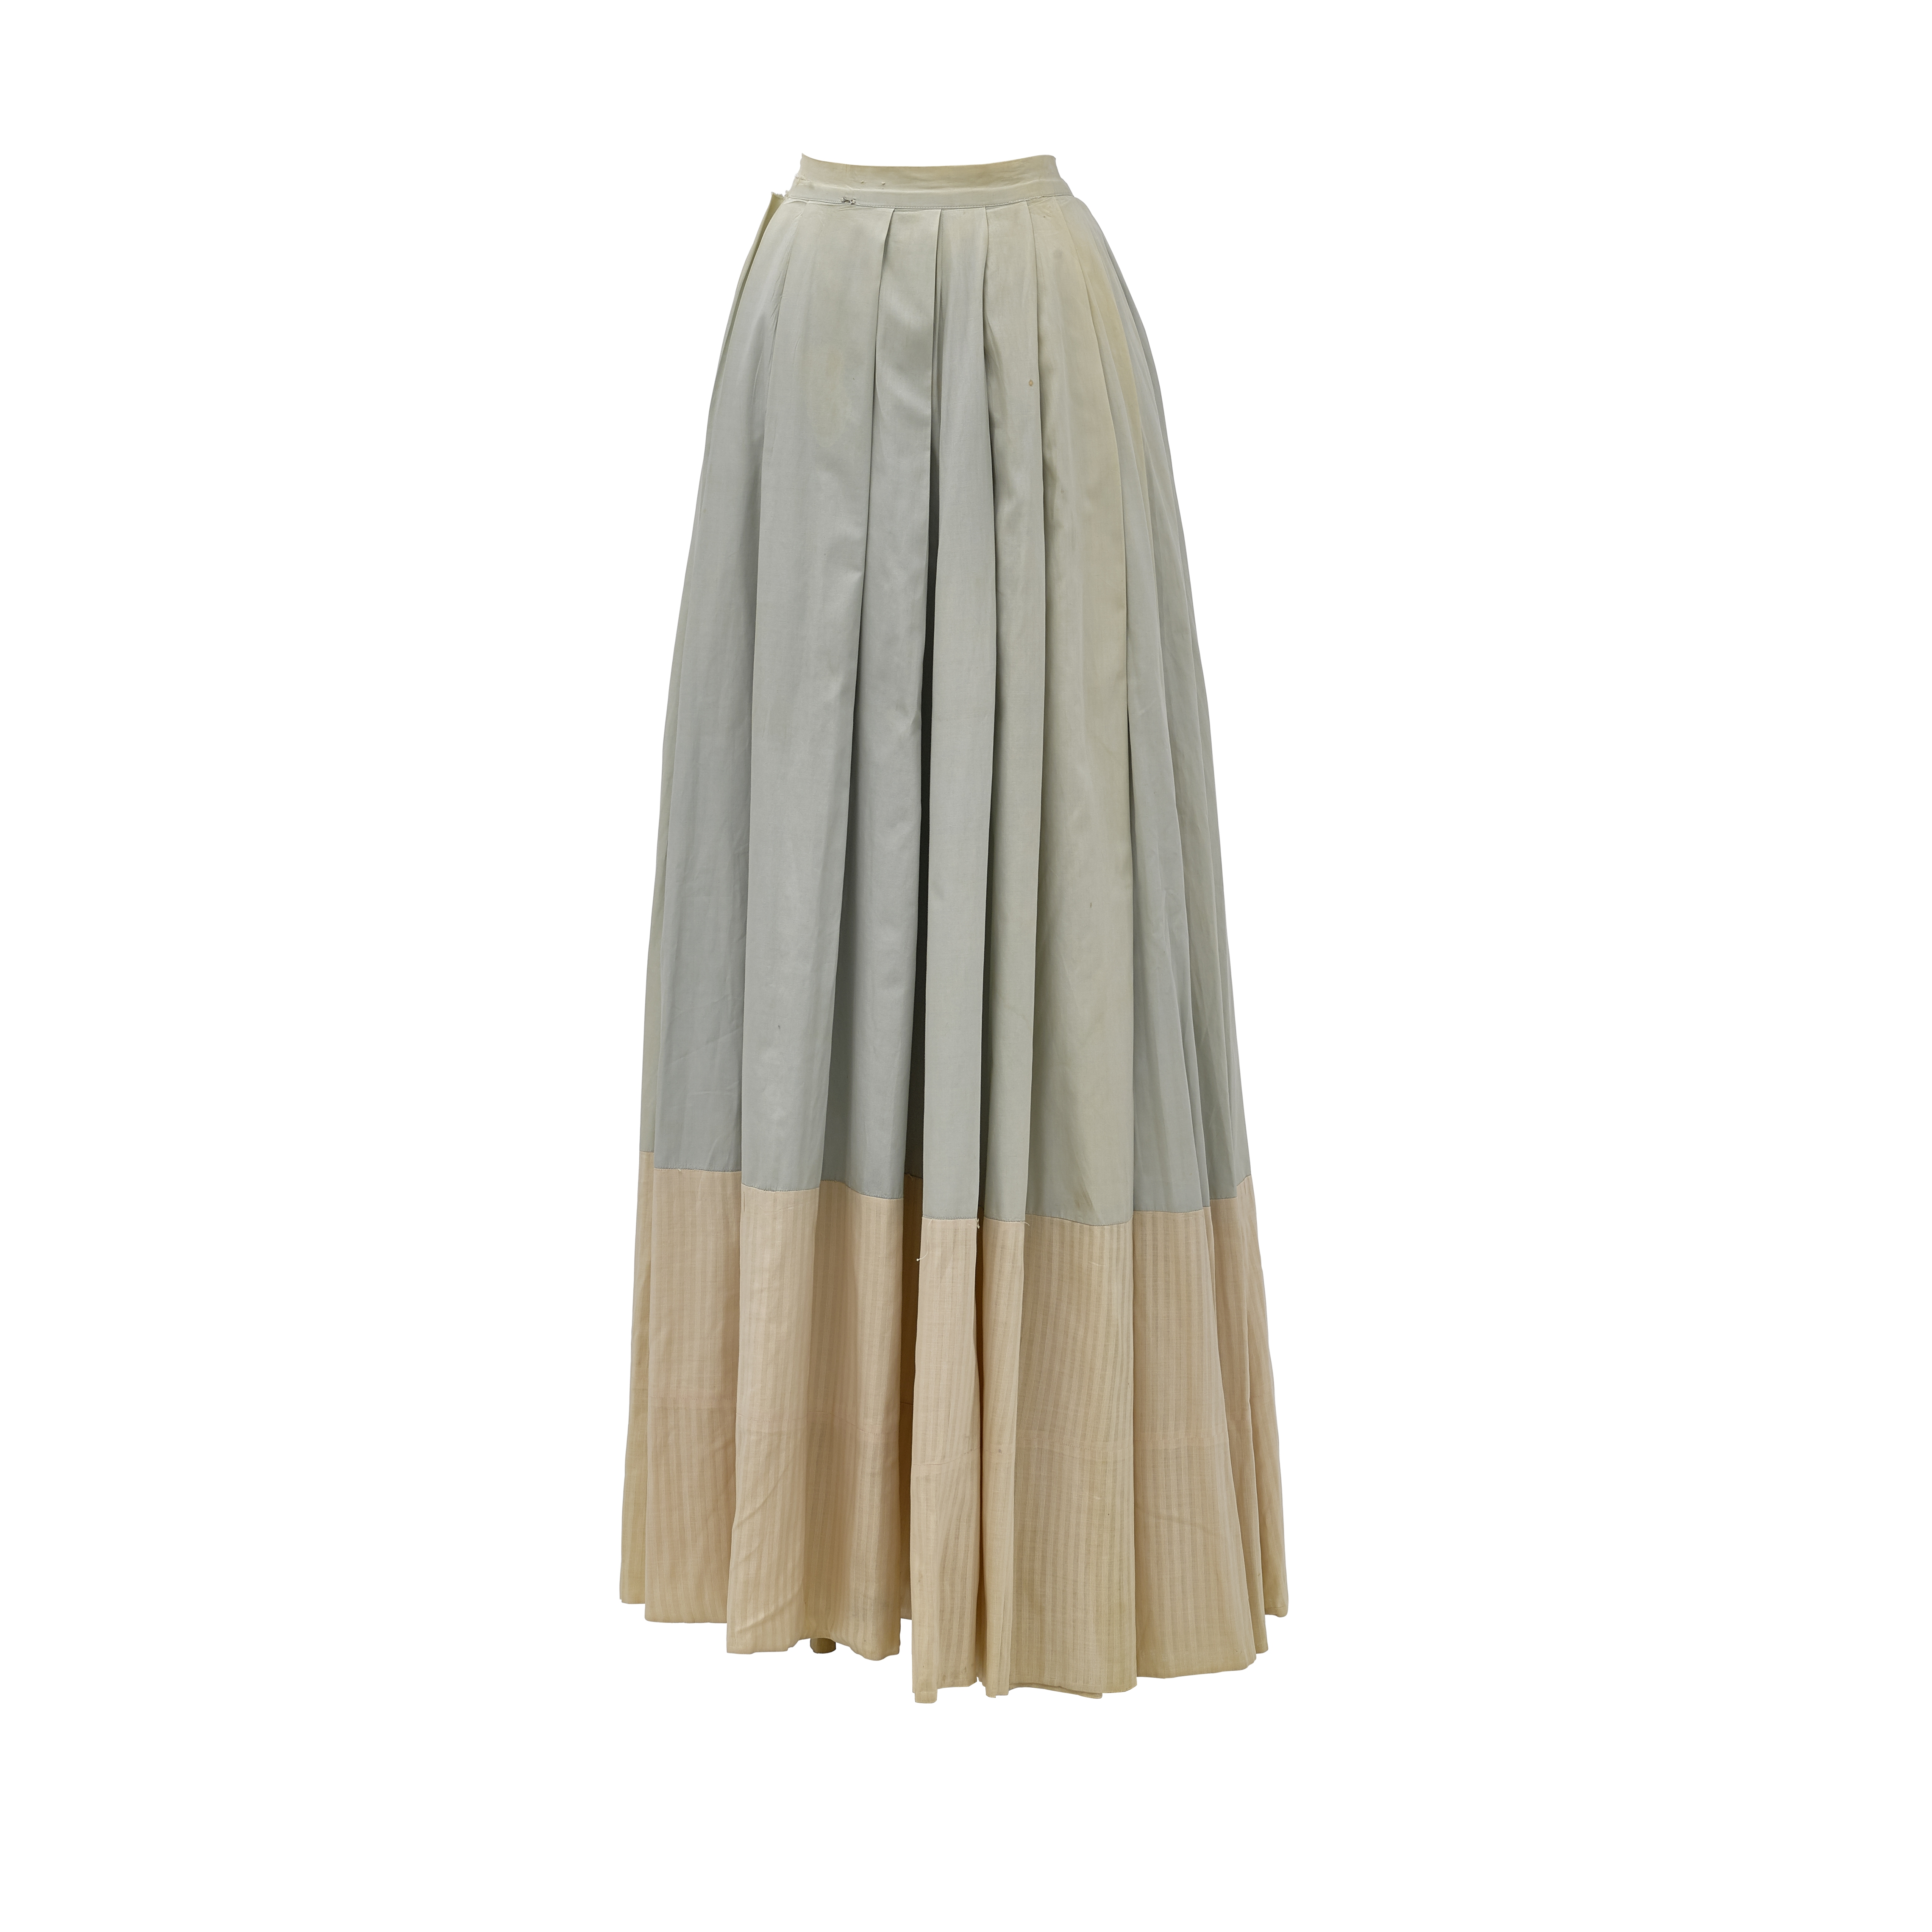 Lot 1051 - An Ann Rutherford skirt from Gone With the Wind